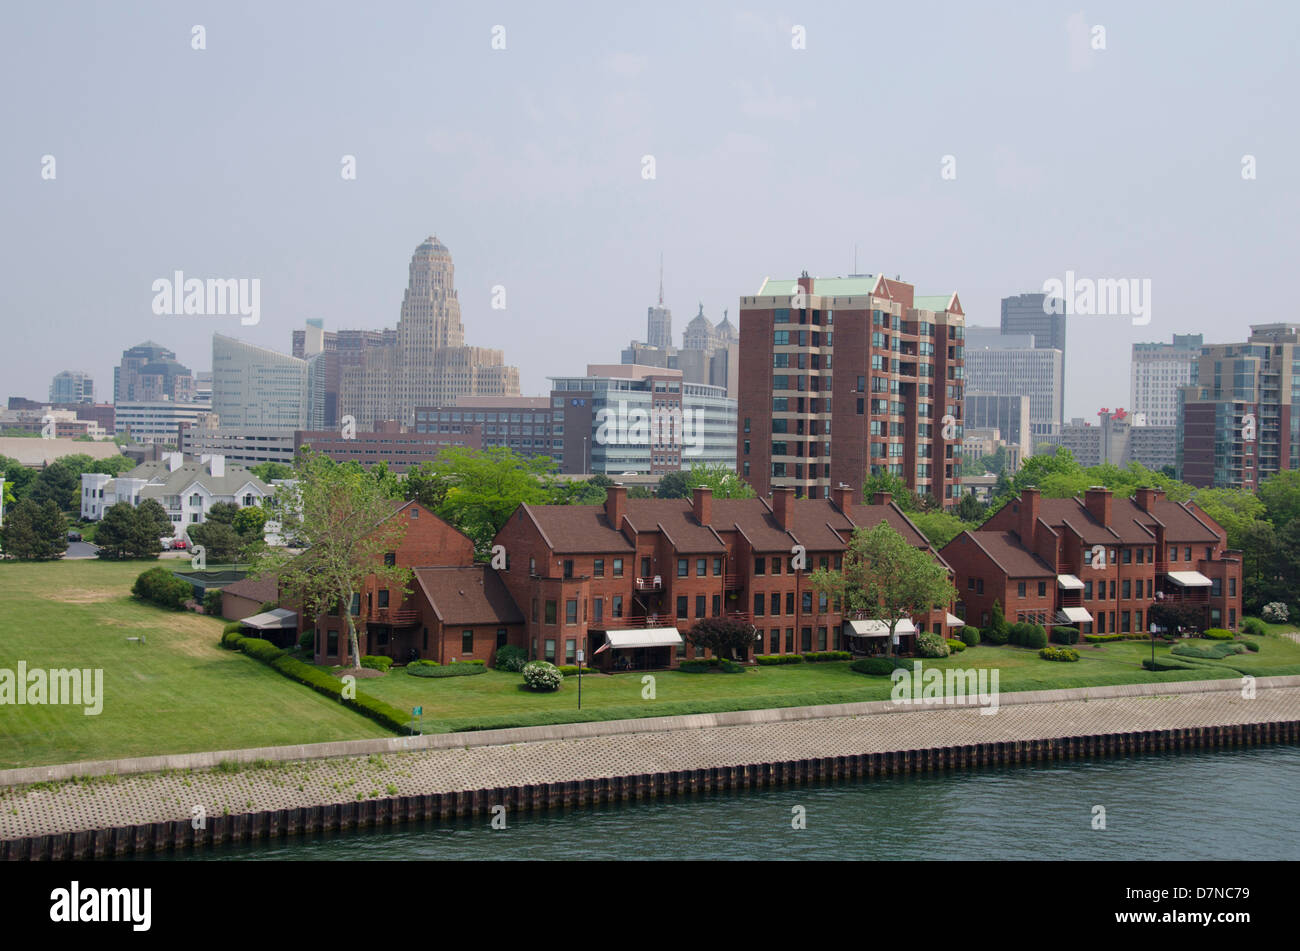 New York, Buffalo, Lake Erie. Waterfront marina area with Buffalo skyline and historic City Hall in distance. - Stock Image